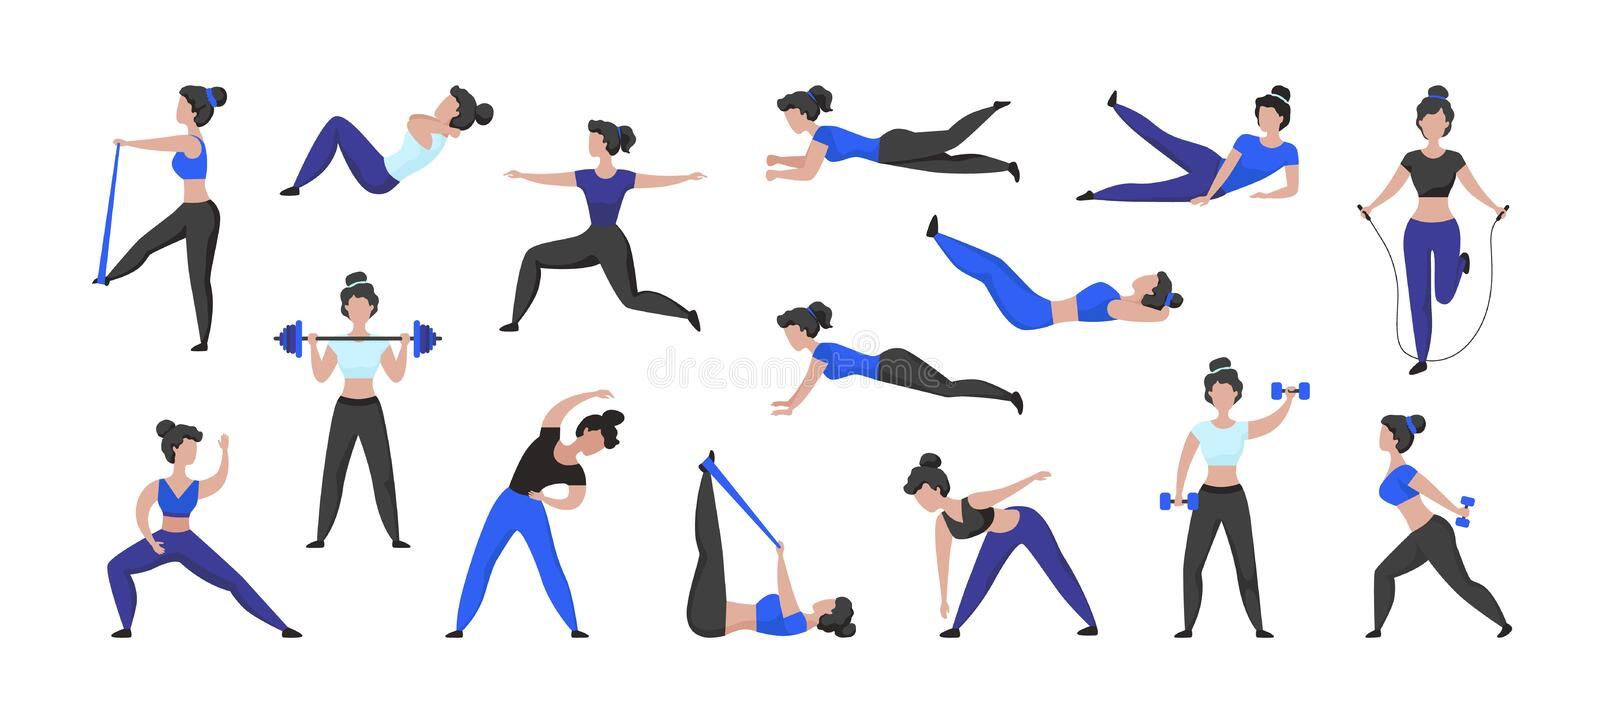 Fitness Workout Cartoon Woman Character Doing Sport Exercises And Training In Gym Isolated Female Character Vector Stock Vector Illustration Of Lunge Exercises 166725200